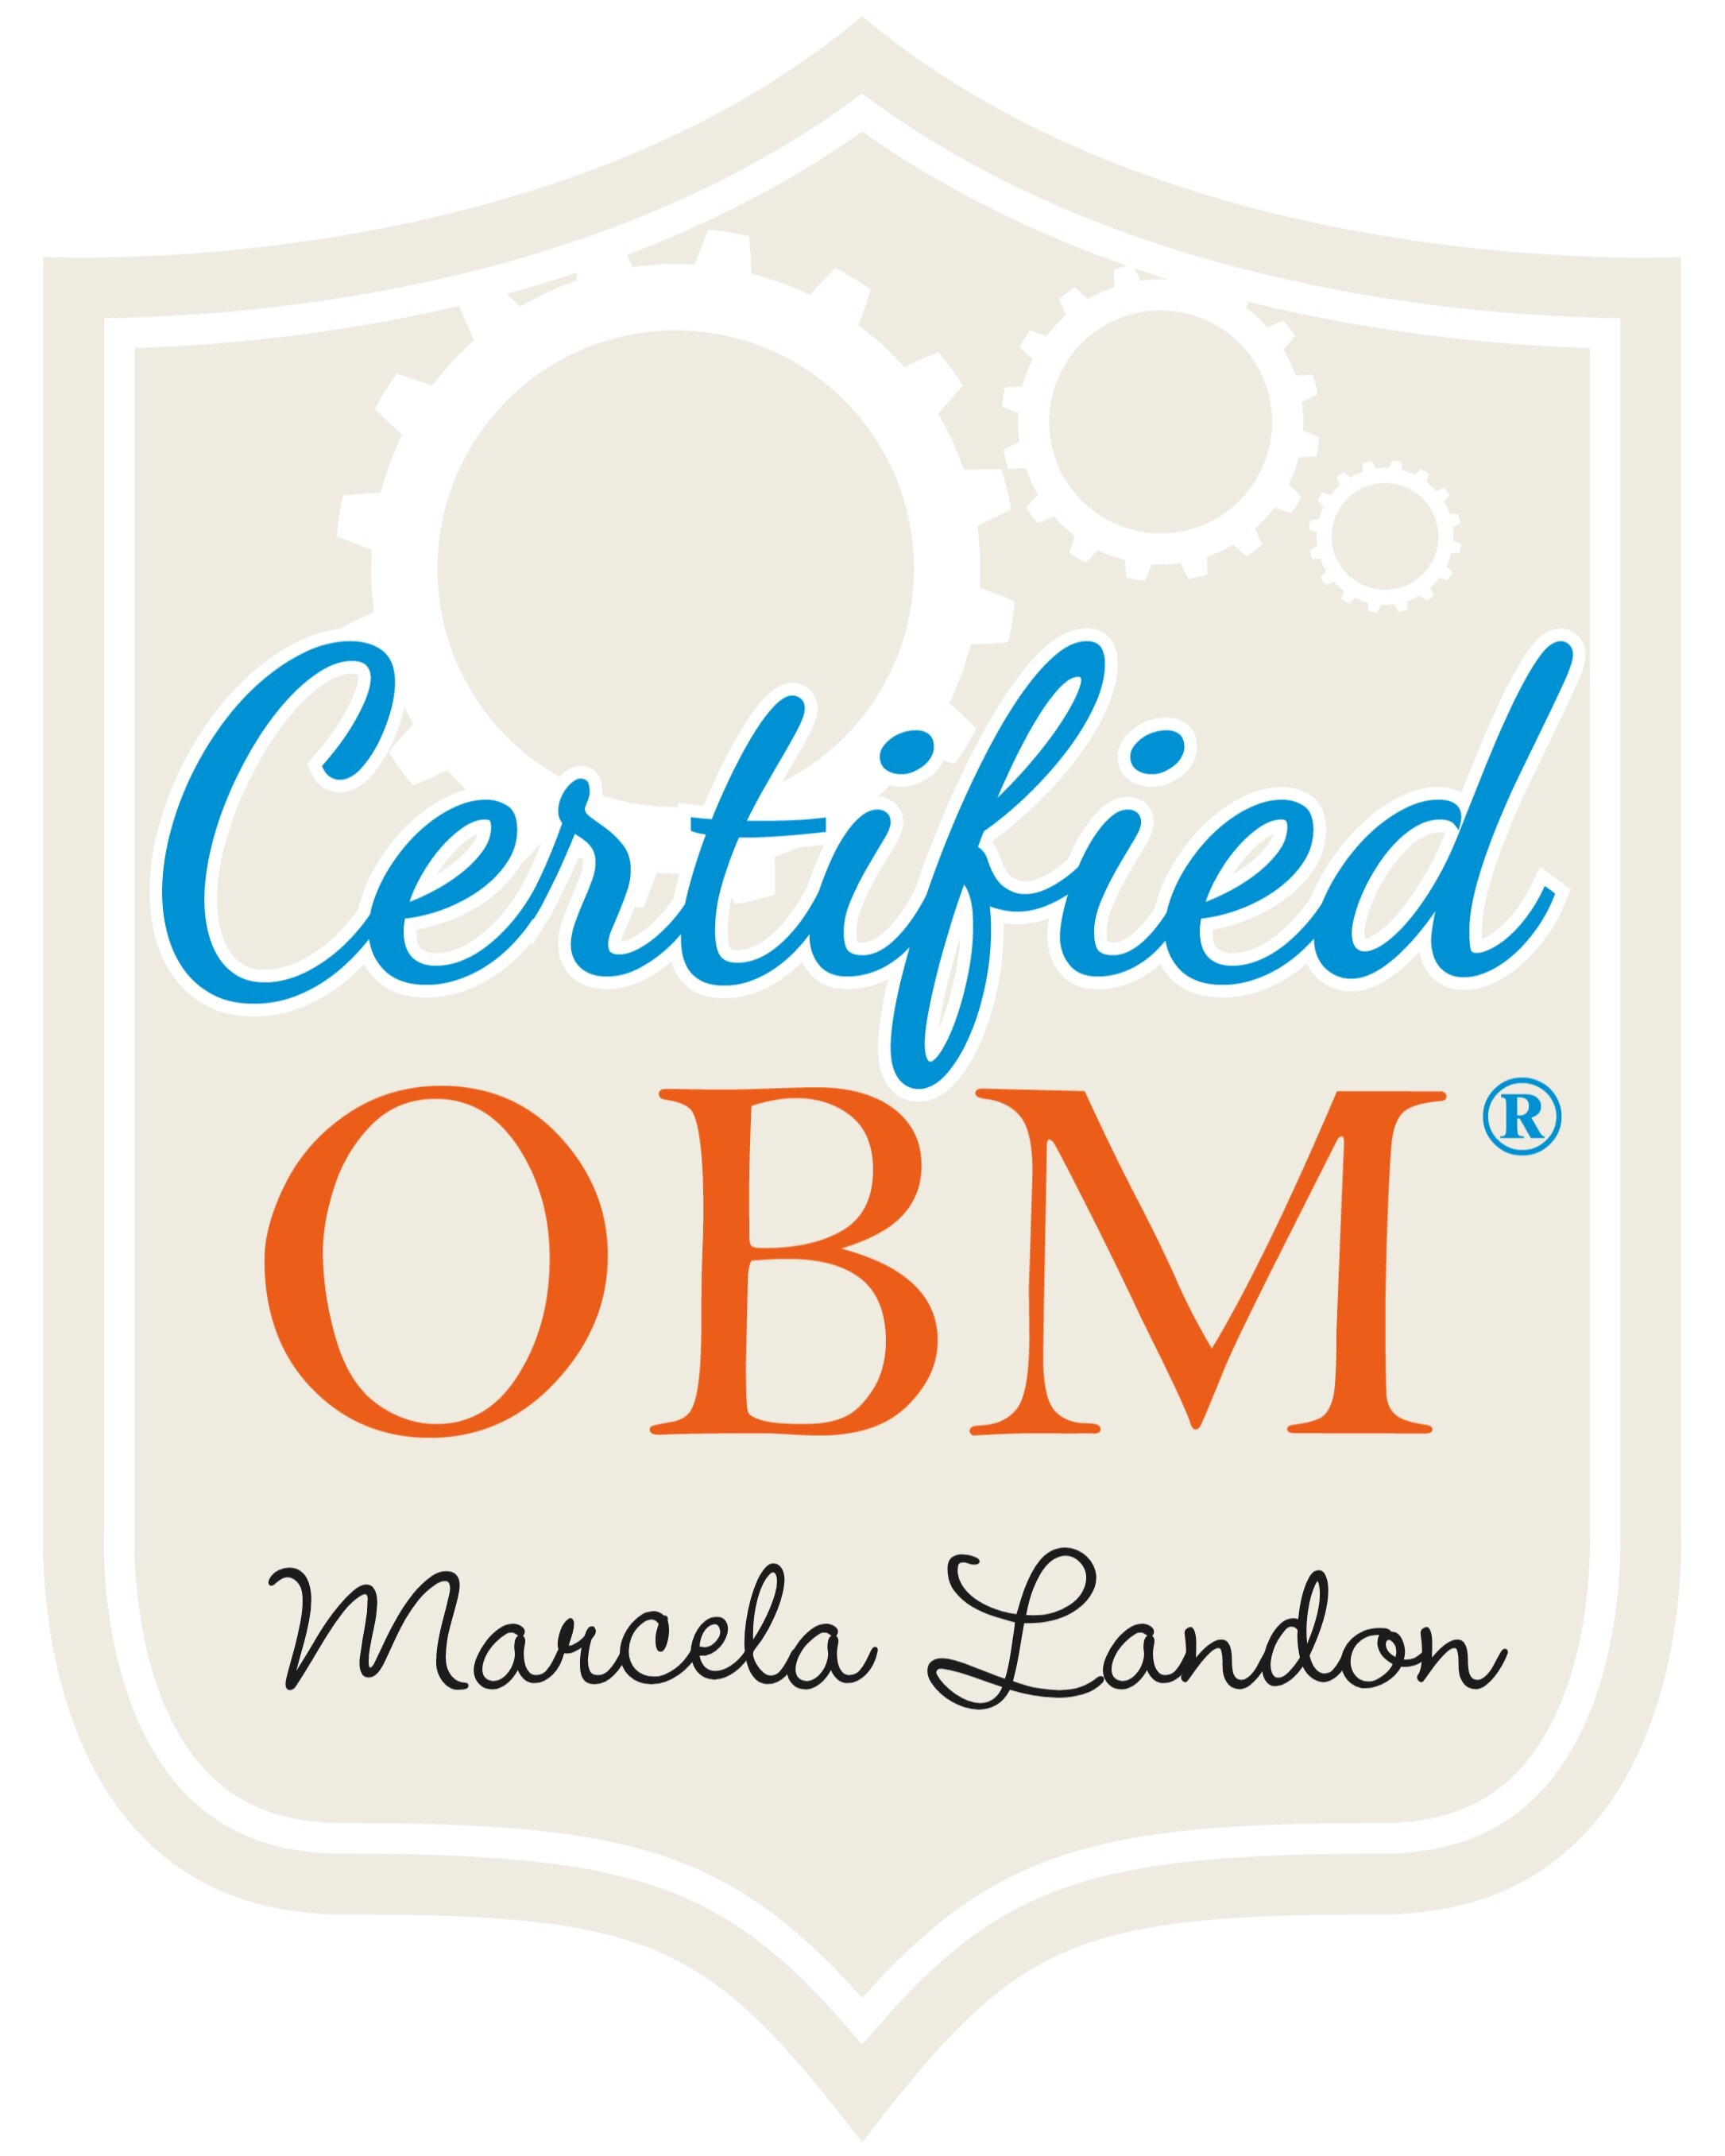 Credentials - The International Association of Online Business Managers (IAOBM) is a professional membership organization dedicated to the promotion and advancement of the Certified OBM® profession worldwide.